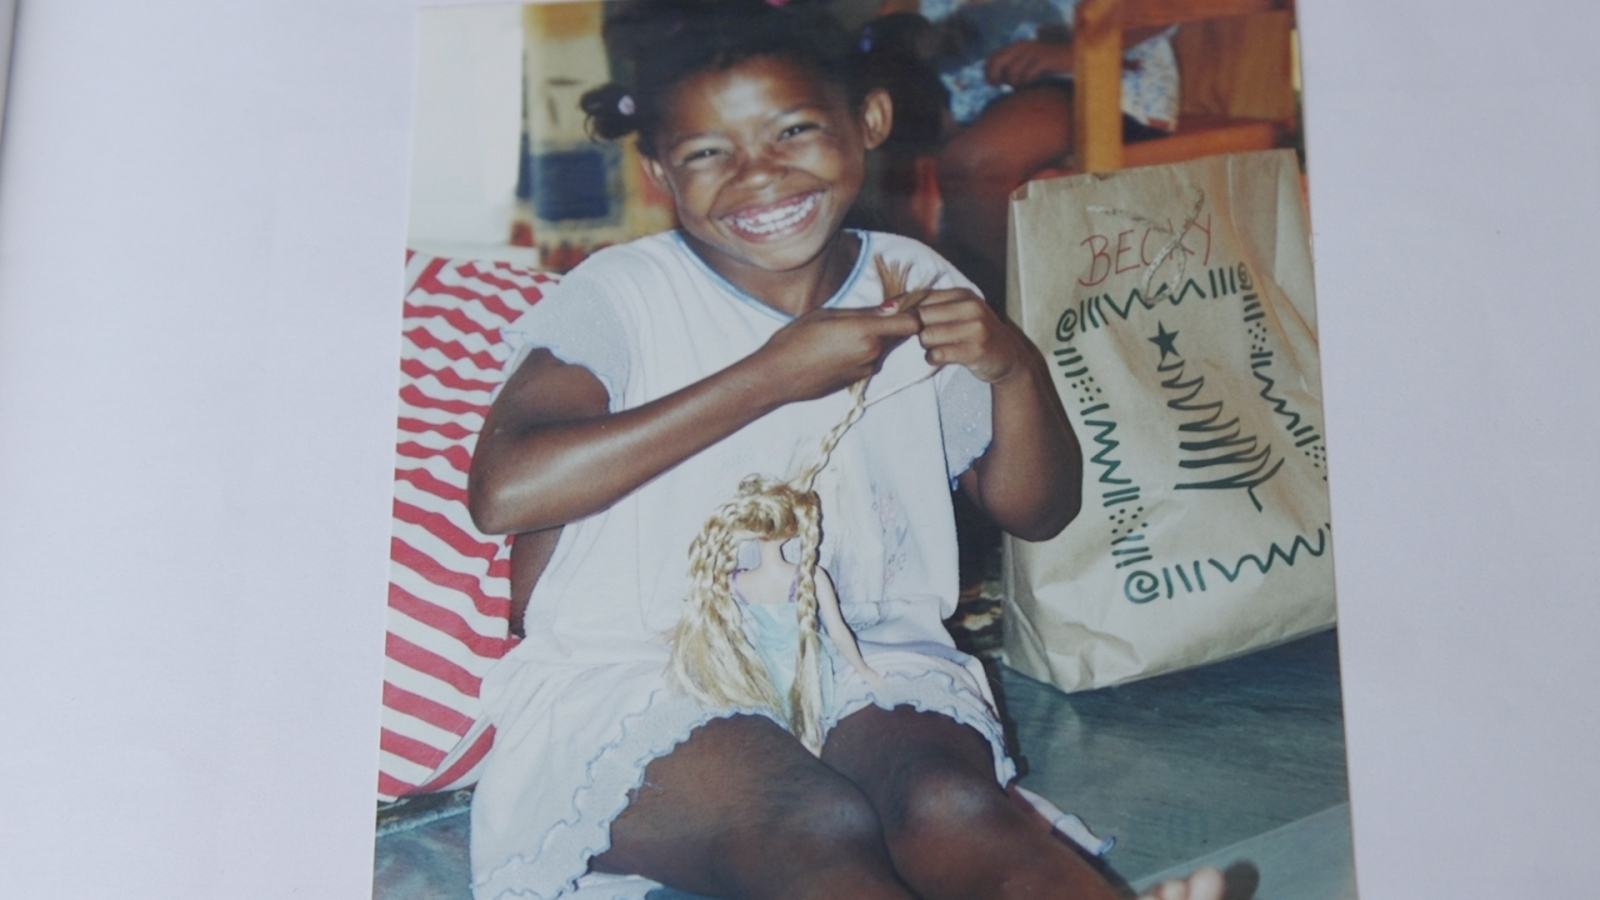 Becky was one of the first children in South Africa to benefit from therapy.